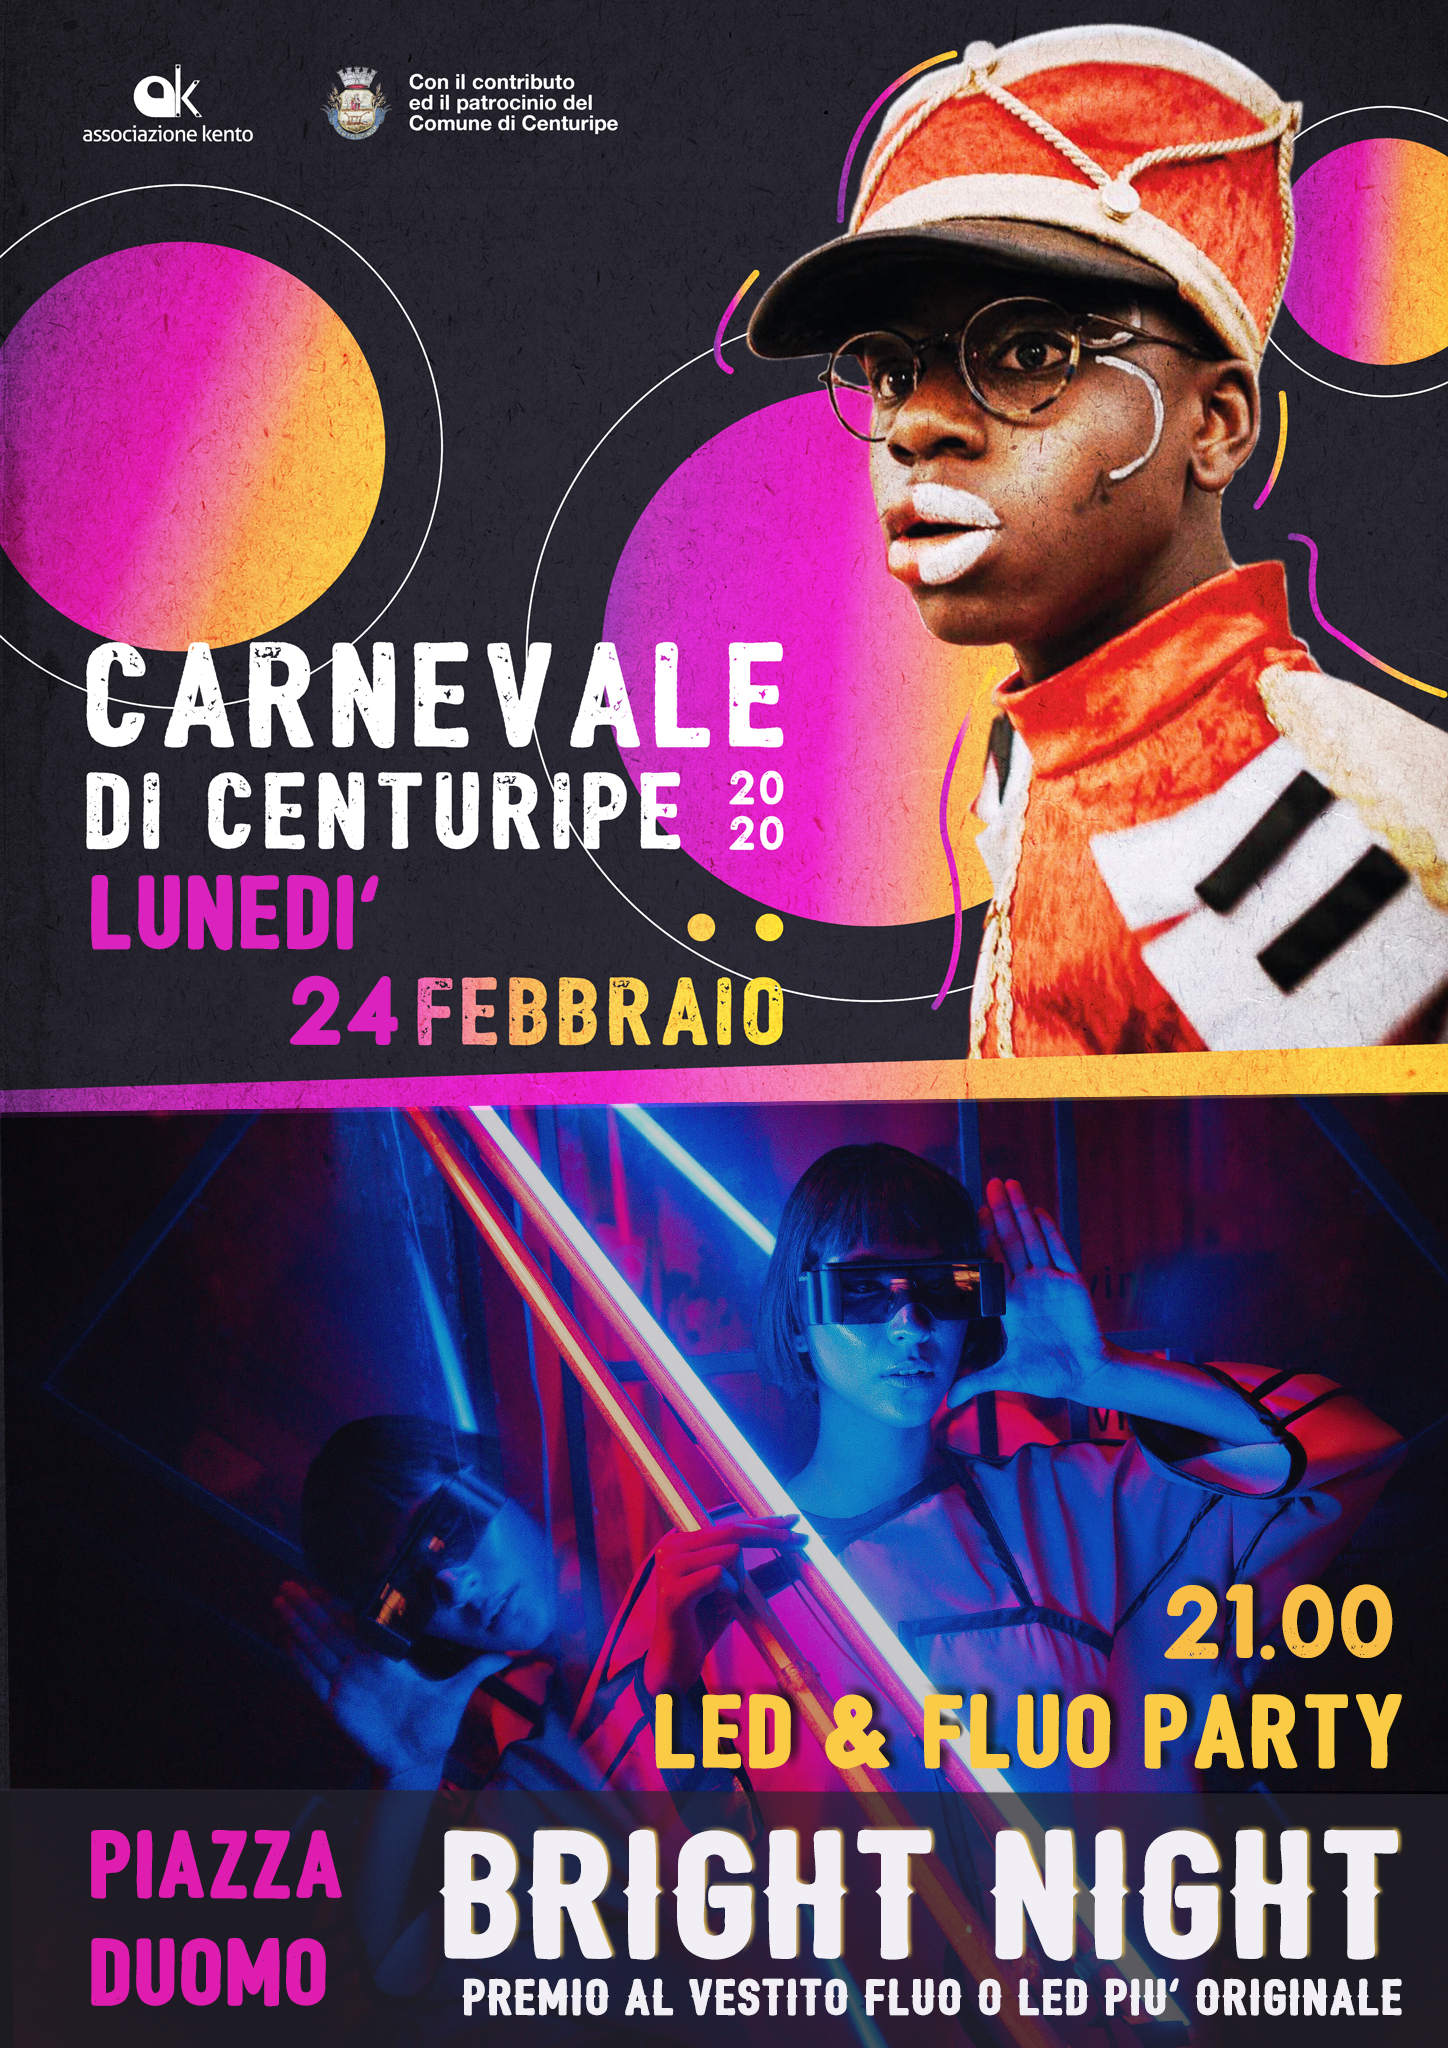 Carnevale-Poster-Fluo2